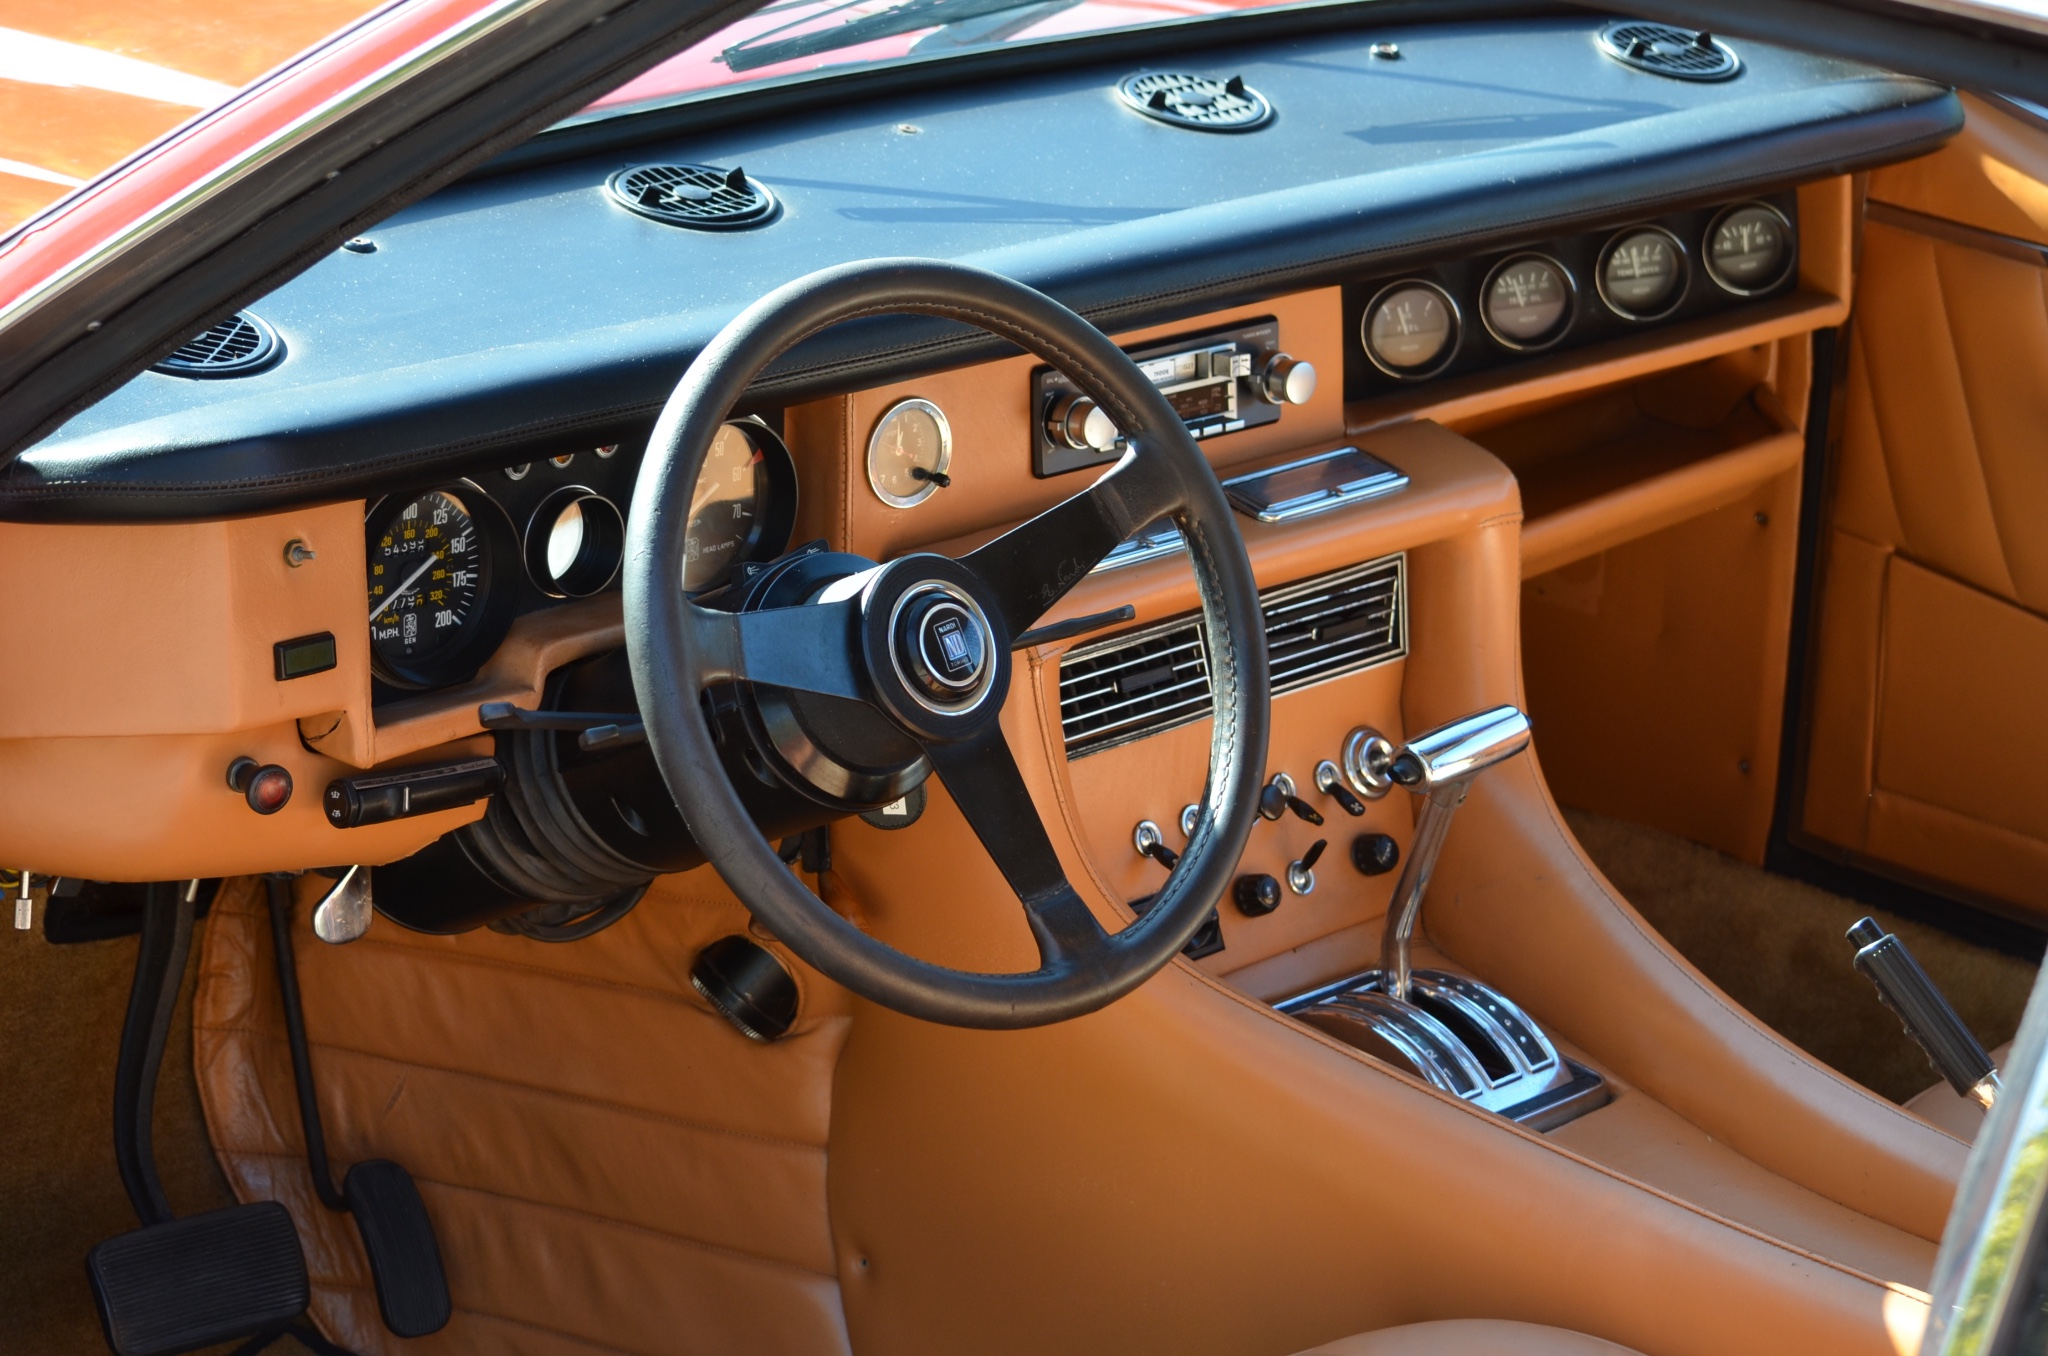 Interior of the Iso Lele is all Italian leather. Dashboard layout is sensible and excellent with engine monitoring gauges clearly visible at all times. (Picture courtesy bringatrailer.com).